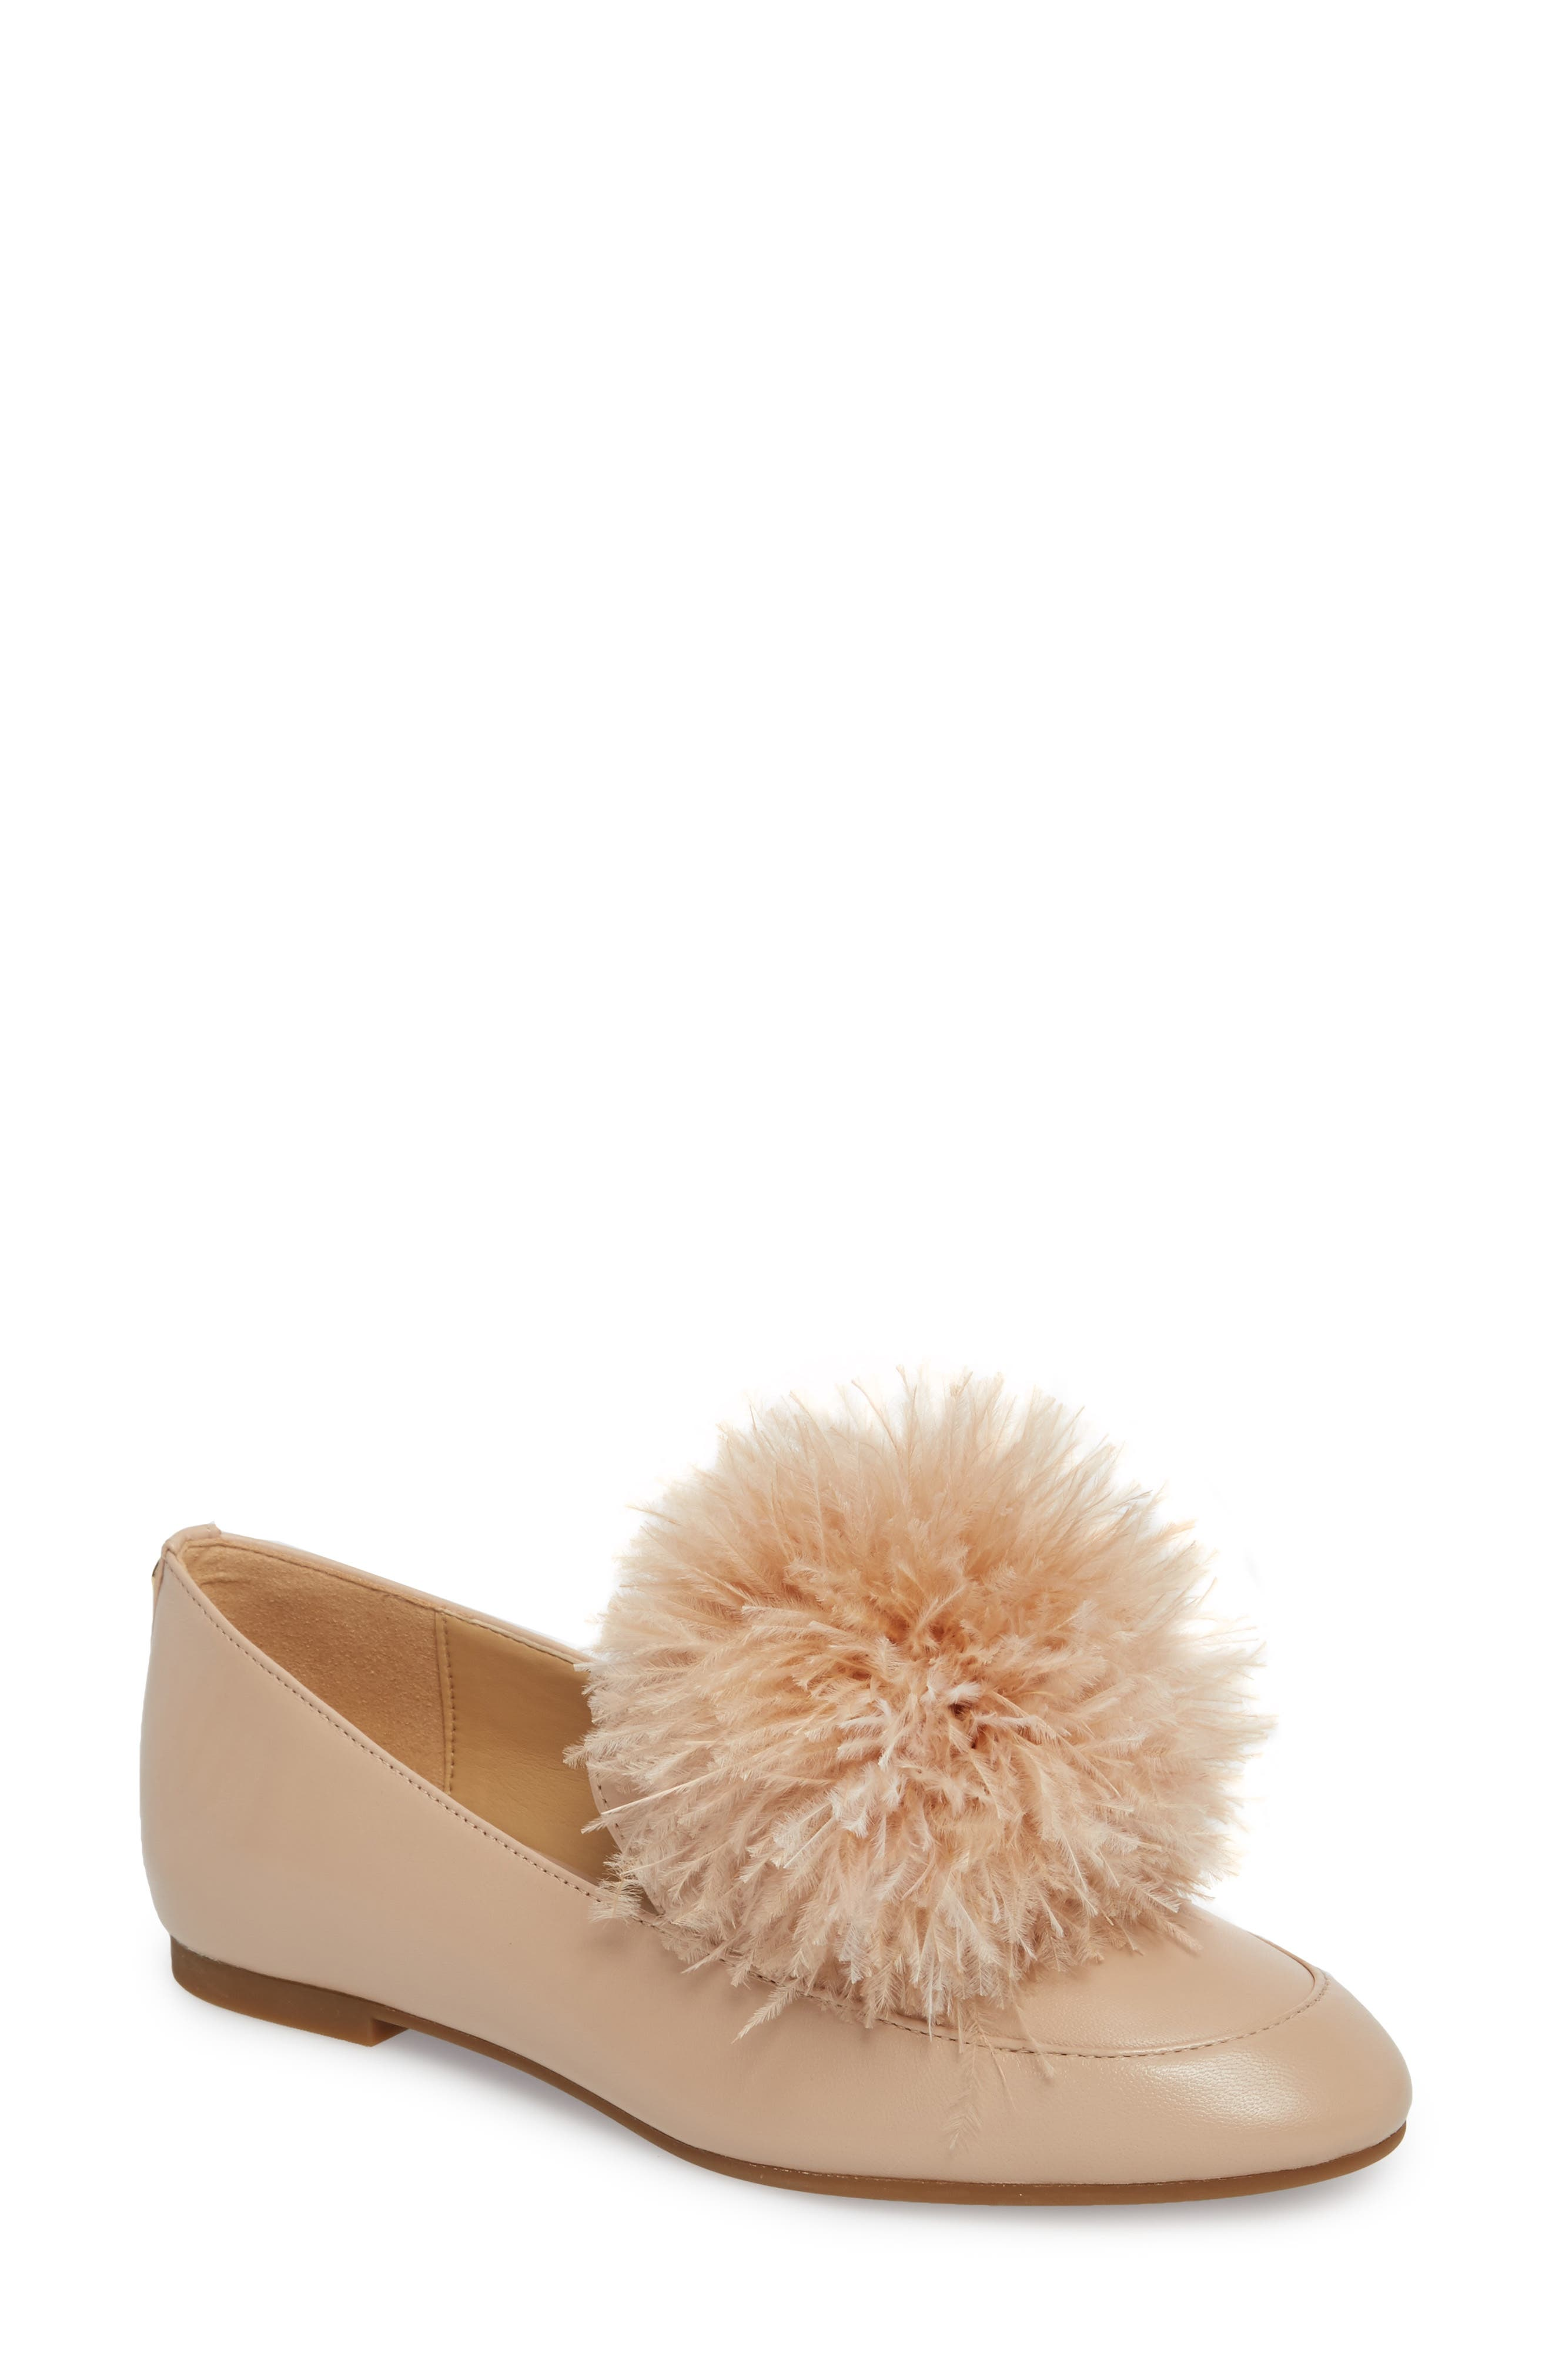 Fara Feather Pom Loafer,                         Main,                         color, Oyster Nappa Leather